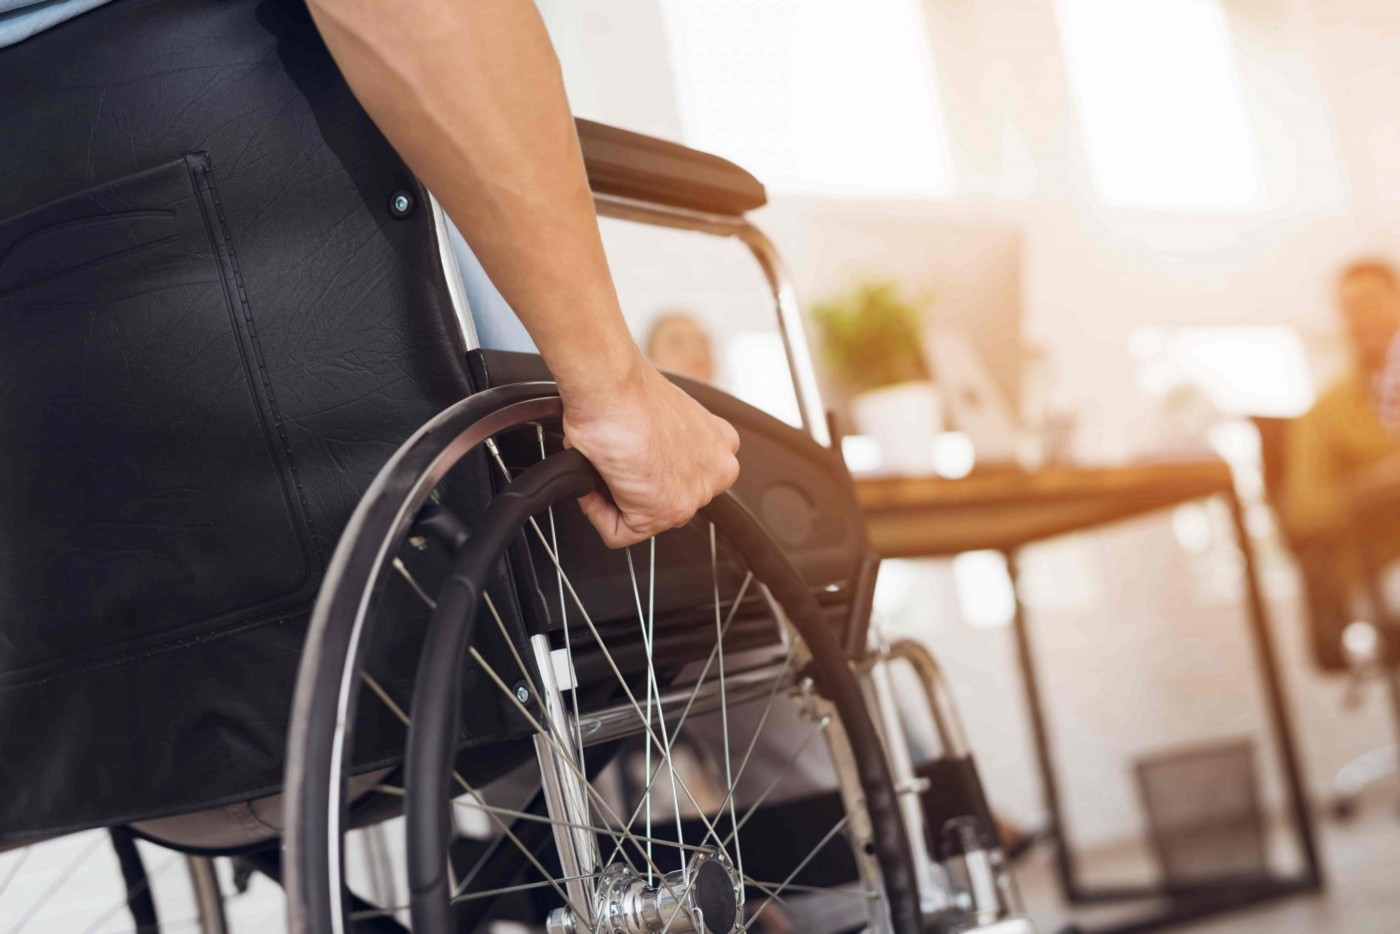 It's time to break the disability stigma in the workplace | Rouzbeh Pirouz